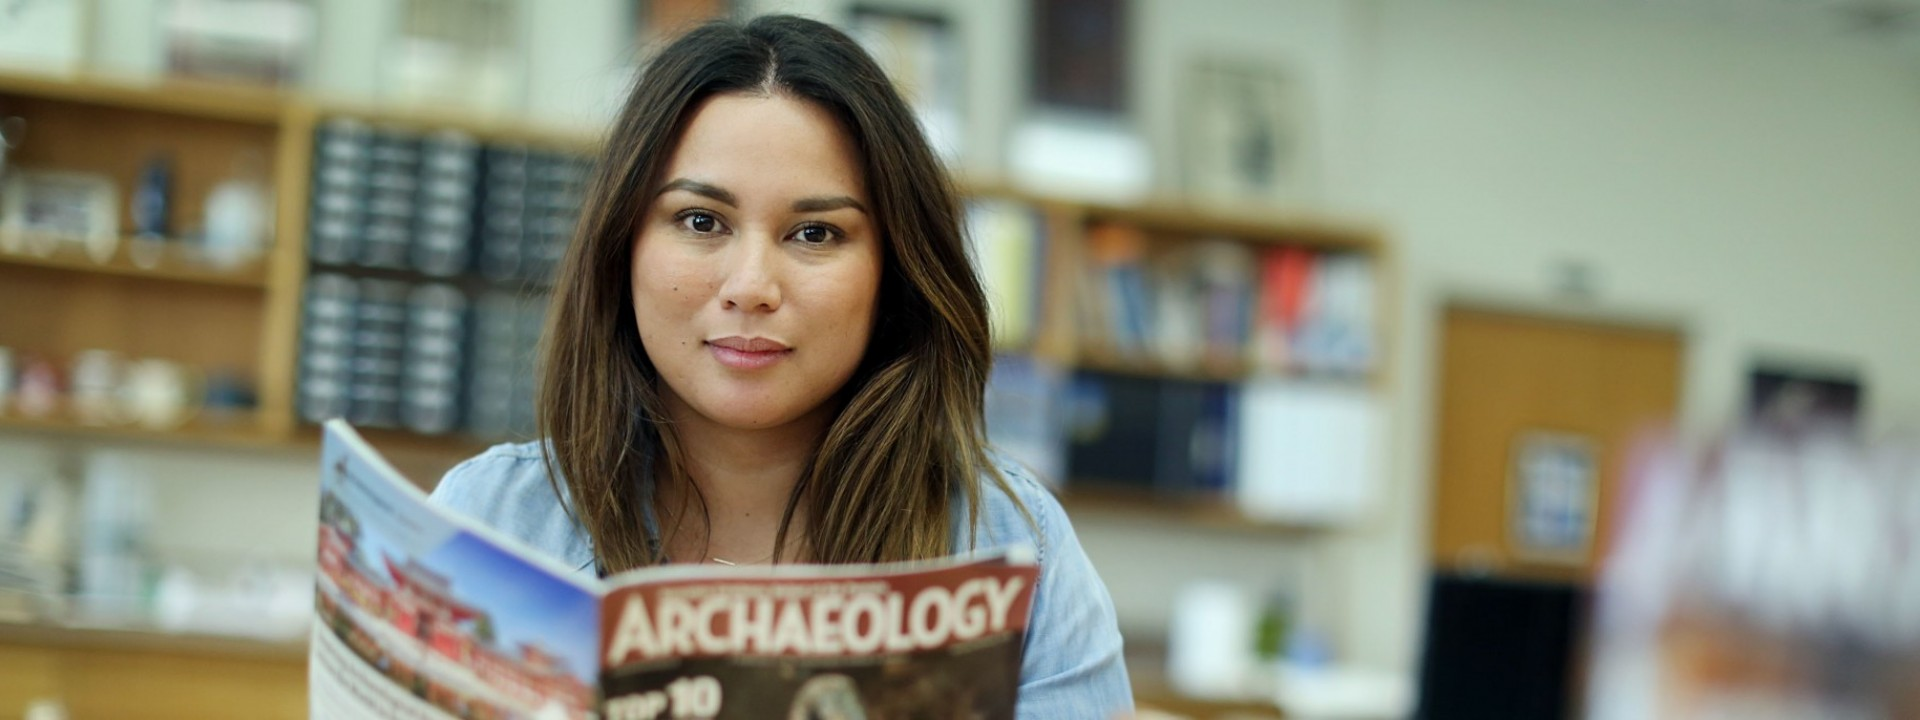 Image of a female student looking directly into the camera as she holds a copy of Archaeology Magazine in a classroom.